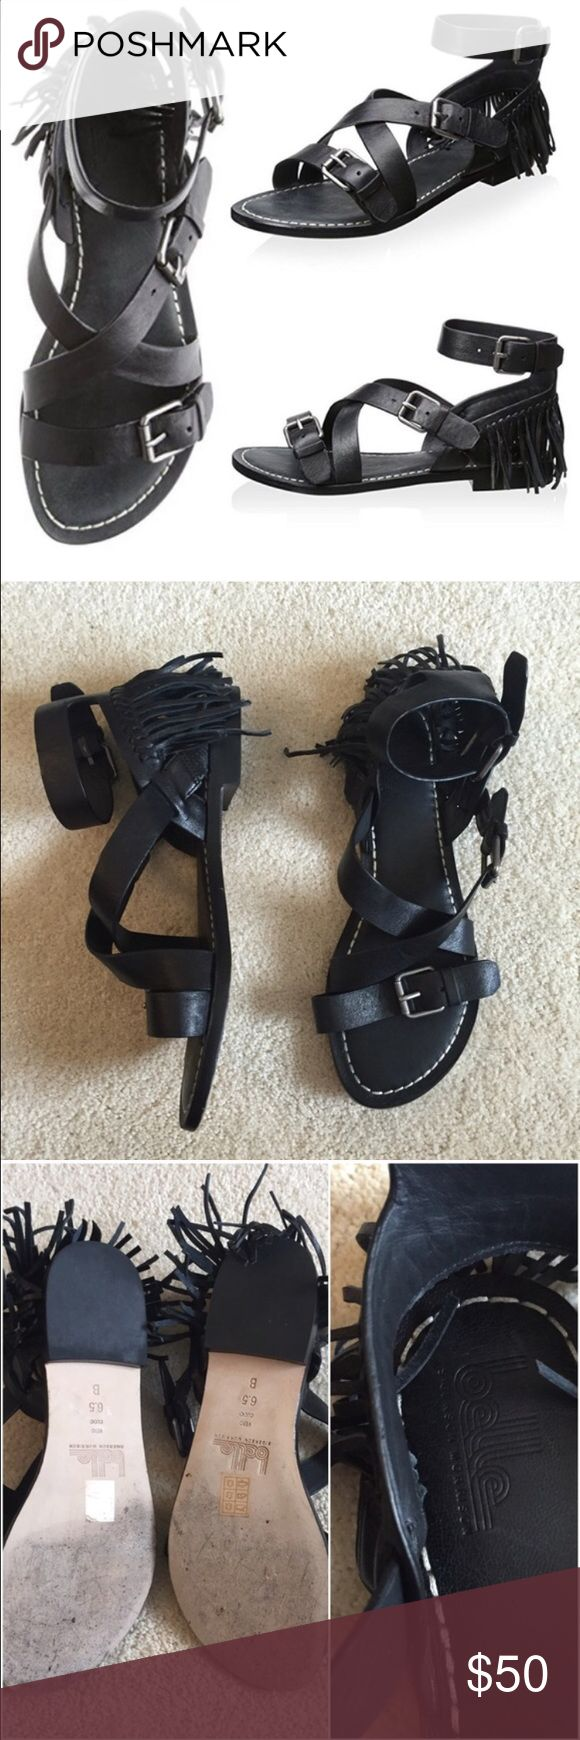 Belle by Sigerson Morrison sandals EUC Cute black leather sandals with fringe detail at back. Silver hardware. True 6.5 sizing Belle by Sigerson Morrison Shoes Sandals